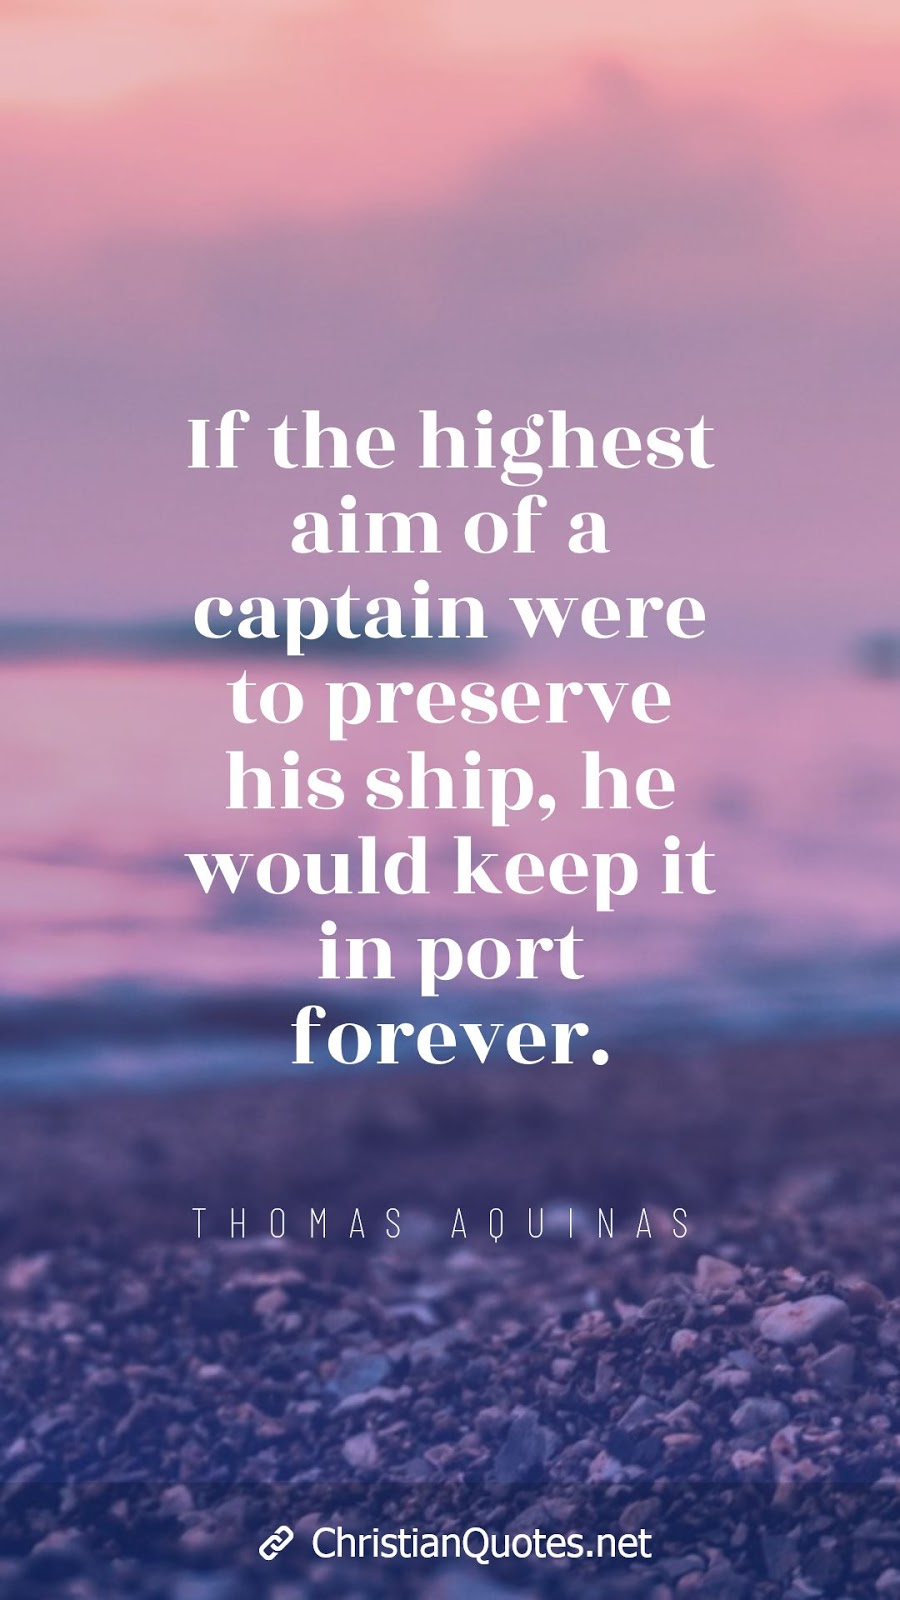 If the highest aim of a captain were to preserve his ship, he would keep it in port forever.